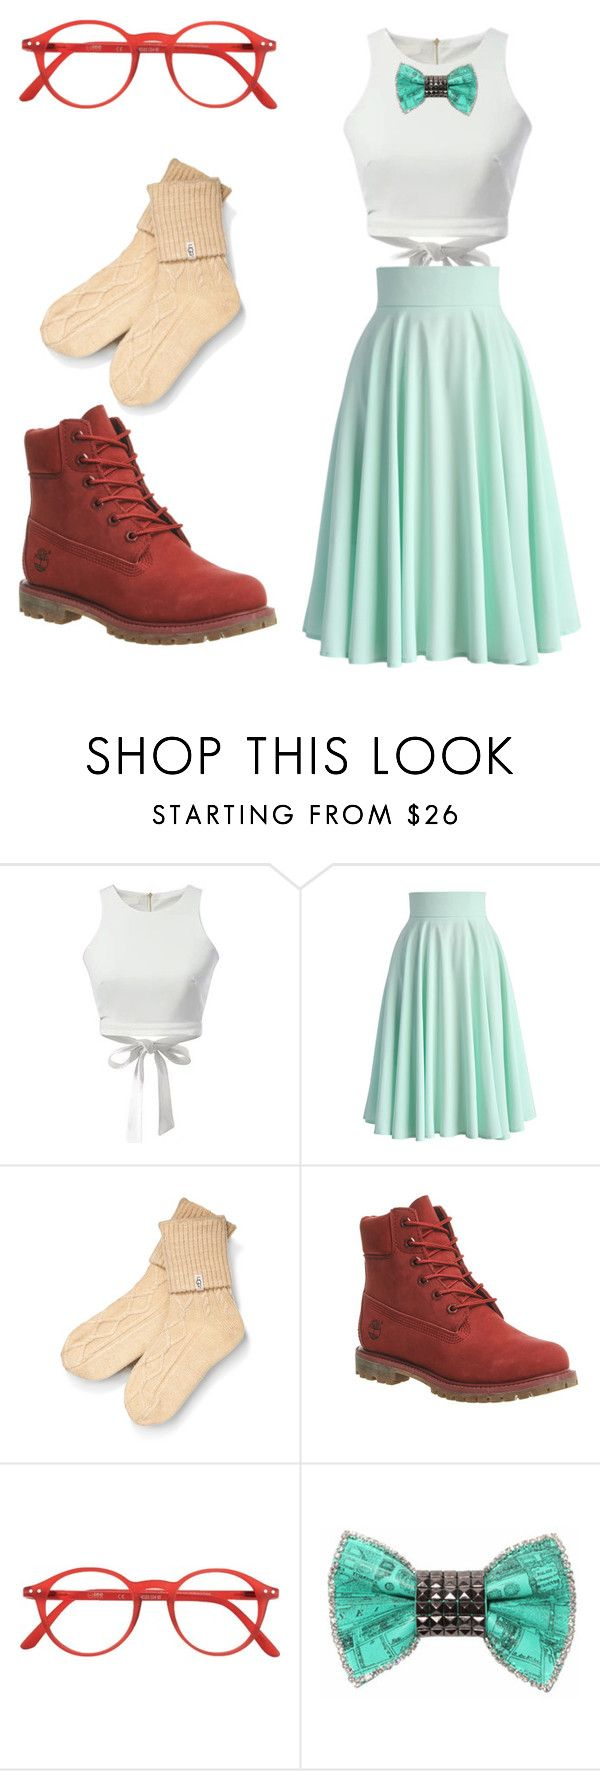 """""""Connie bound"""" by auridoll on Polyvore featuring moda, WithChic, Chicwish, UGG Australia, Timberland, See Concept, Bijoux de Famille, Boots, mint y glasses"""